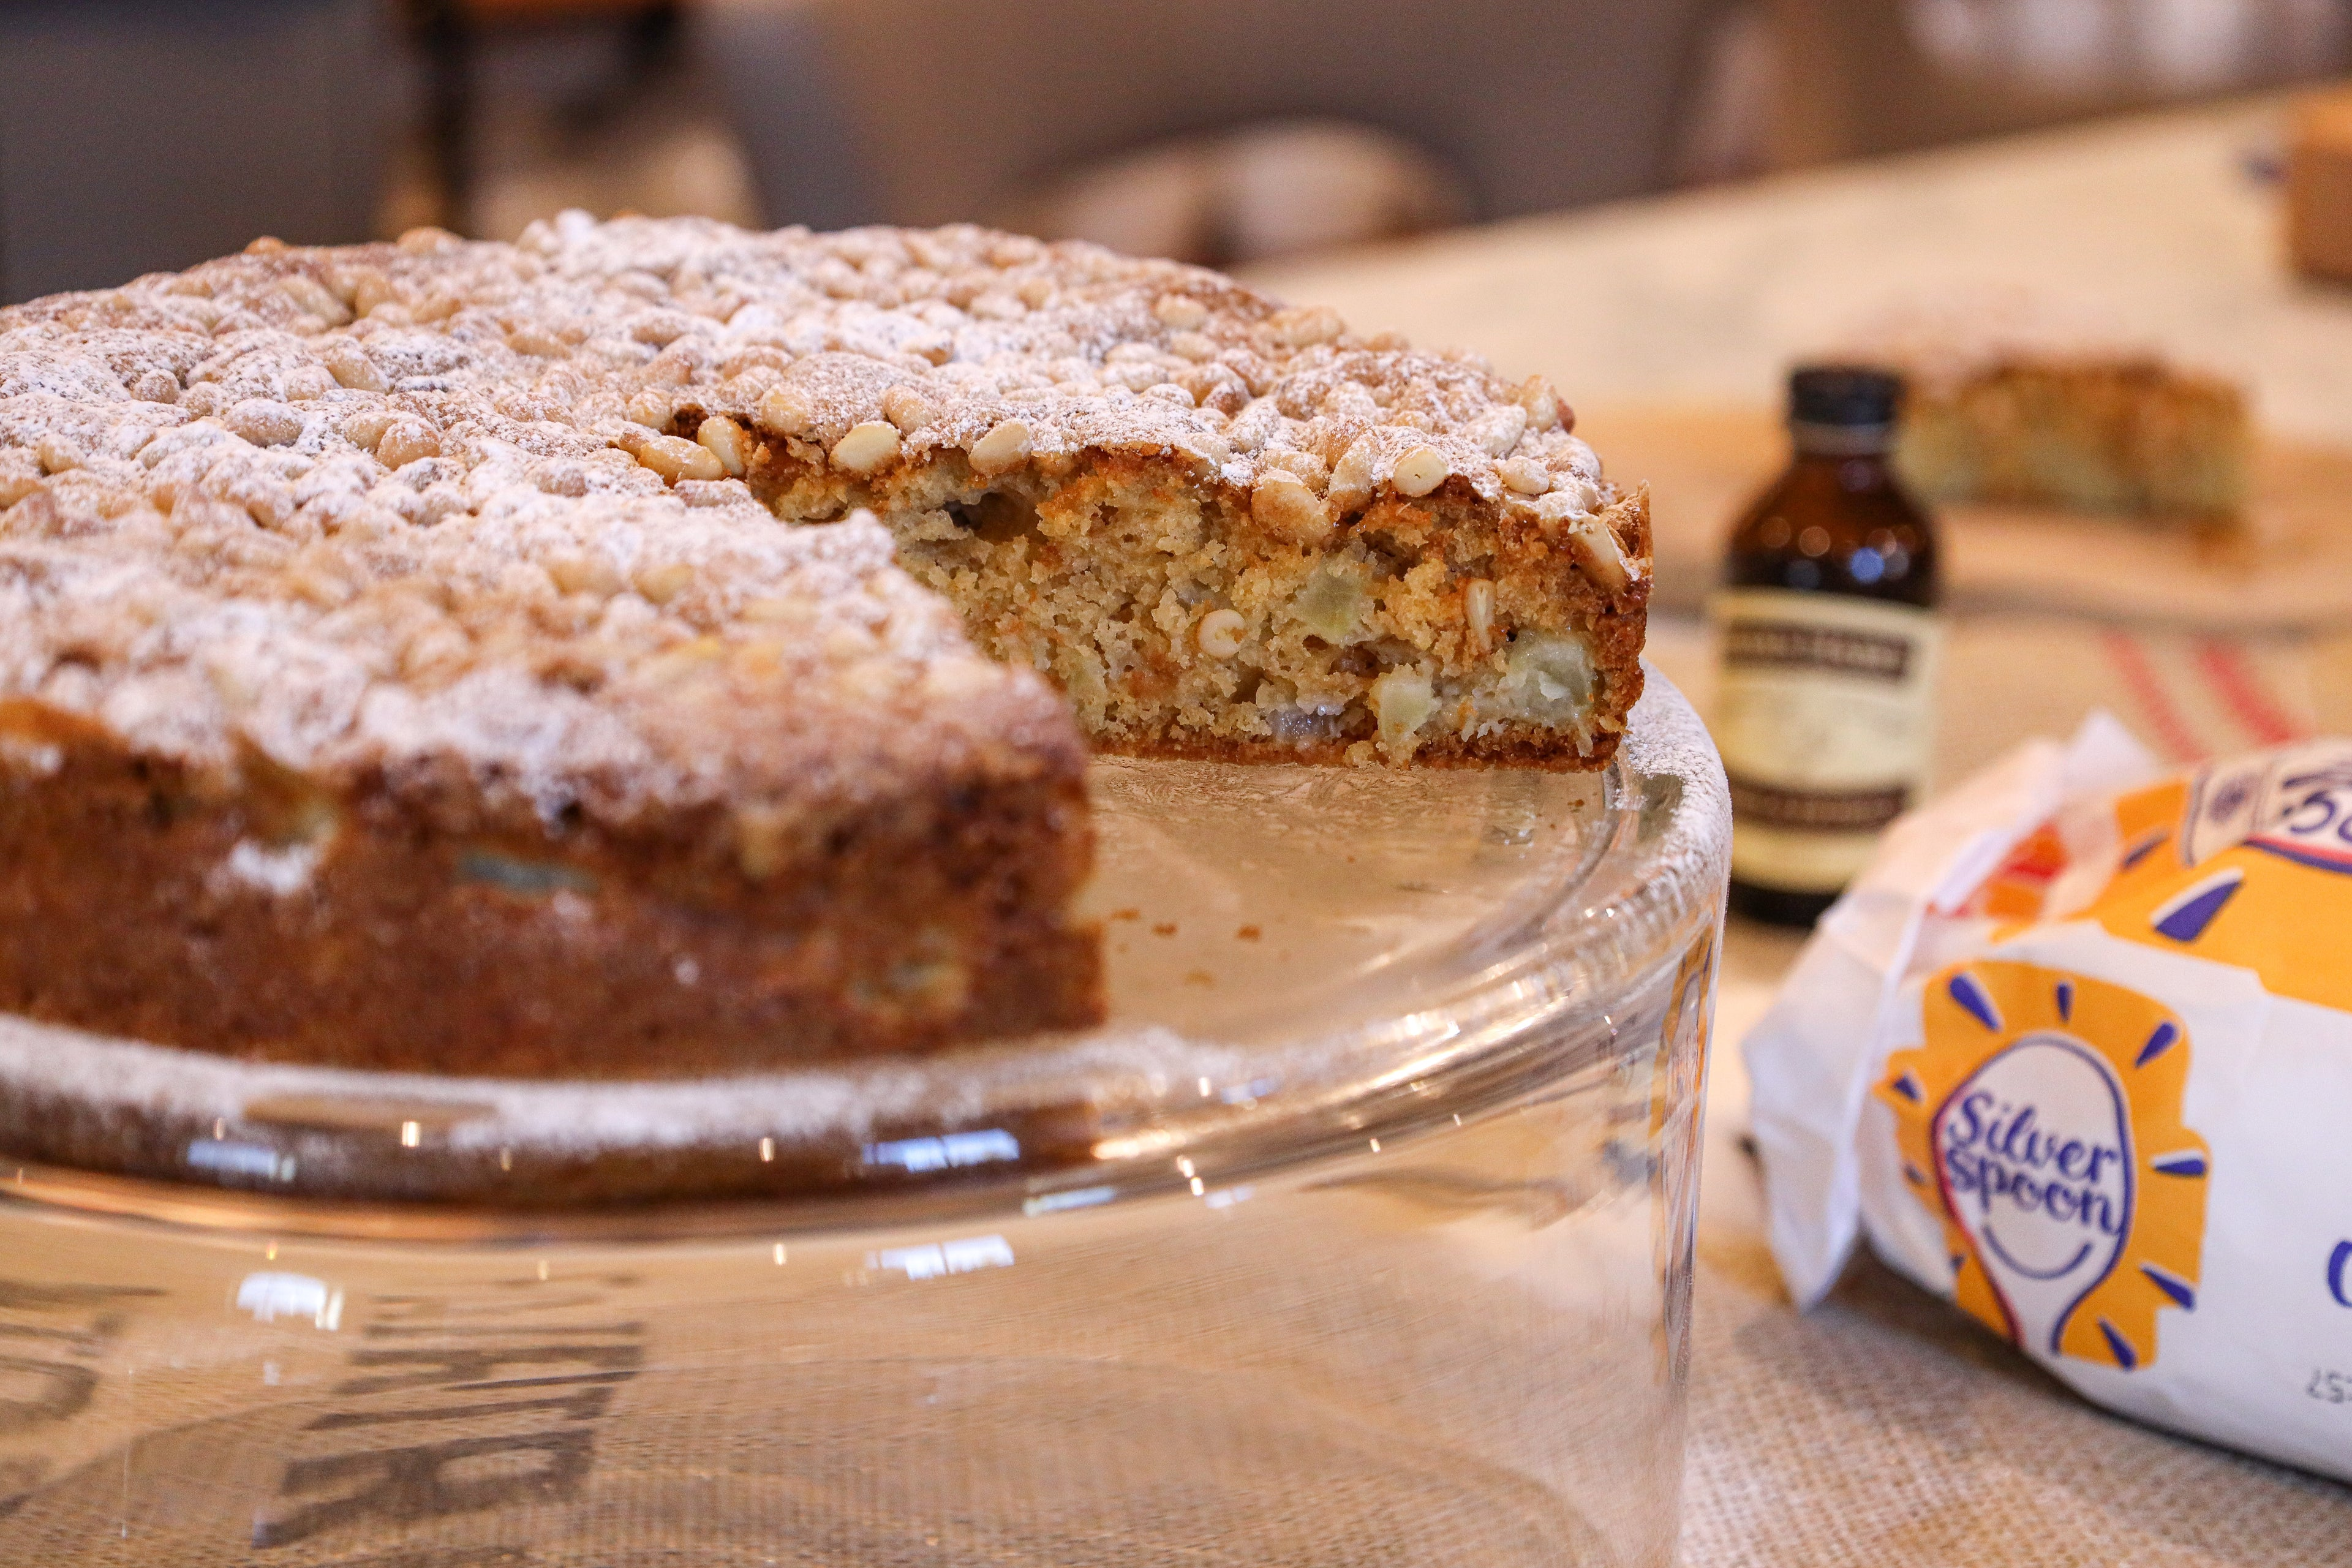 Apple cake with slice cut out, sugar pack and vanilla bottle in background